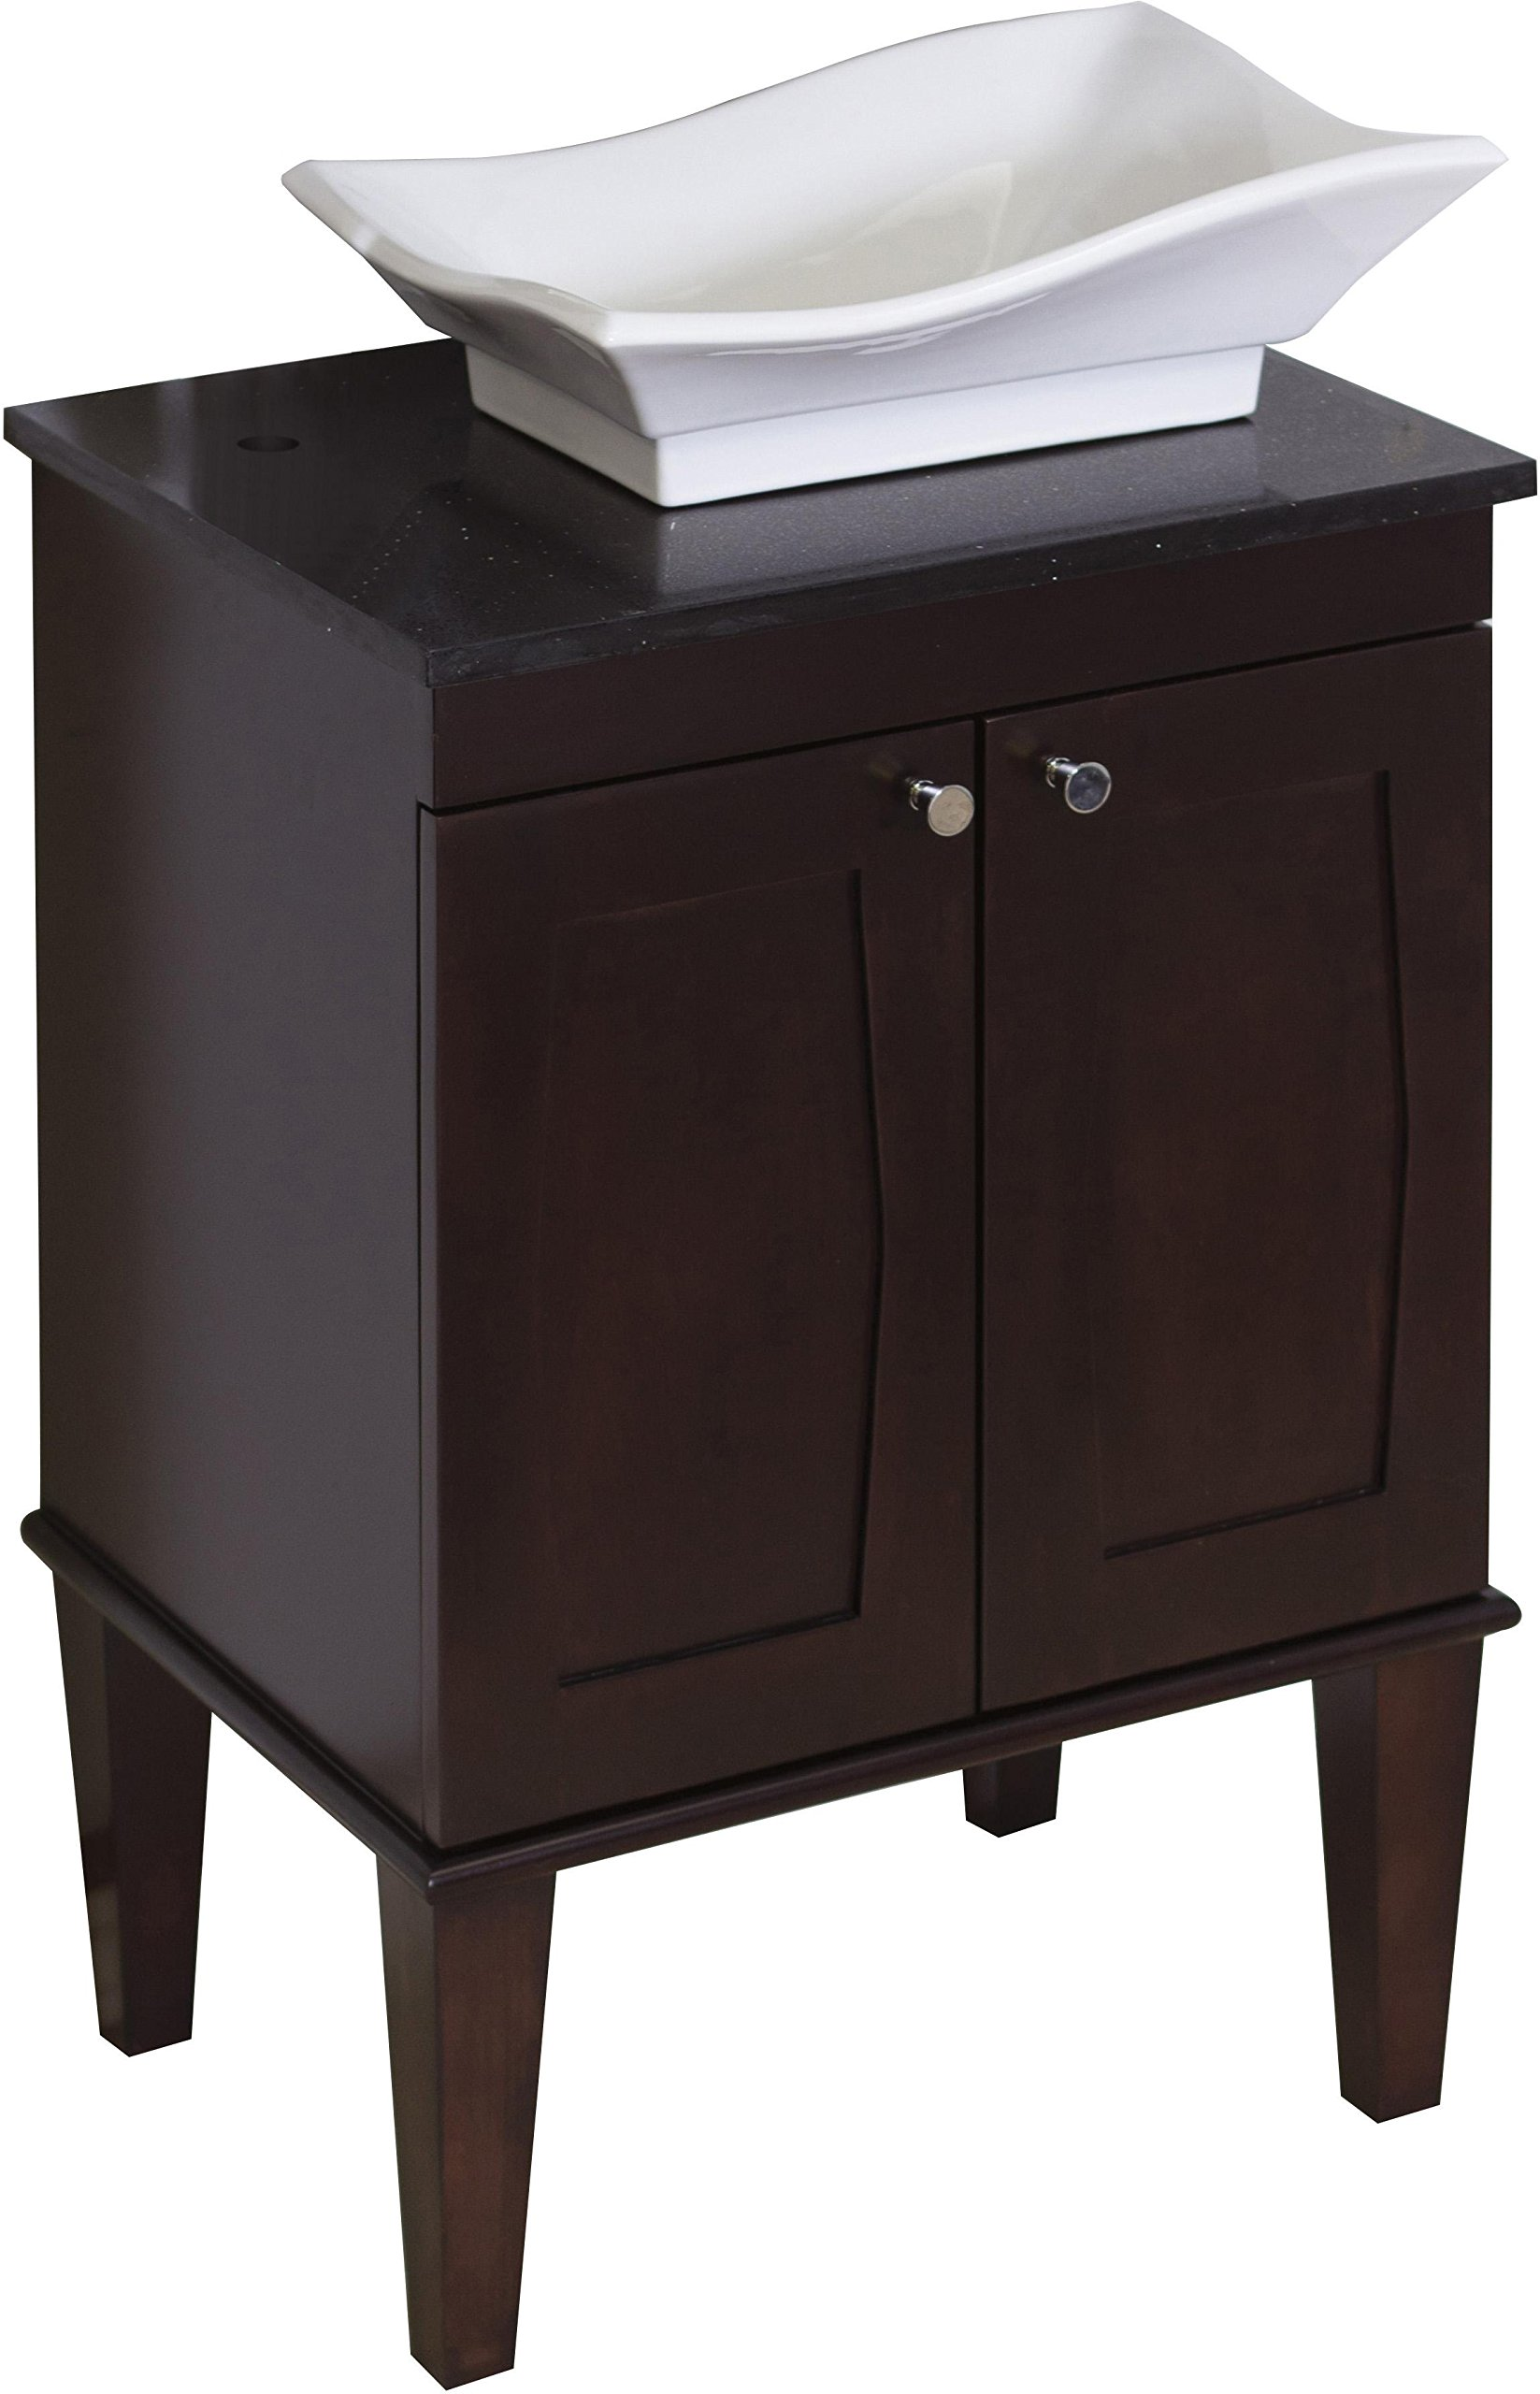 American Imaginations Rectangle Shape Transitional Vanity Set, Comes with a Lacquer-Stain Finish in Antique Walnut Color and Designed for a Single Hole Faucet